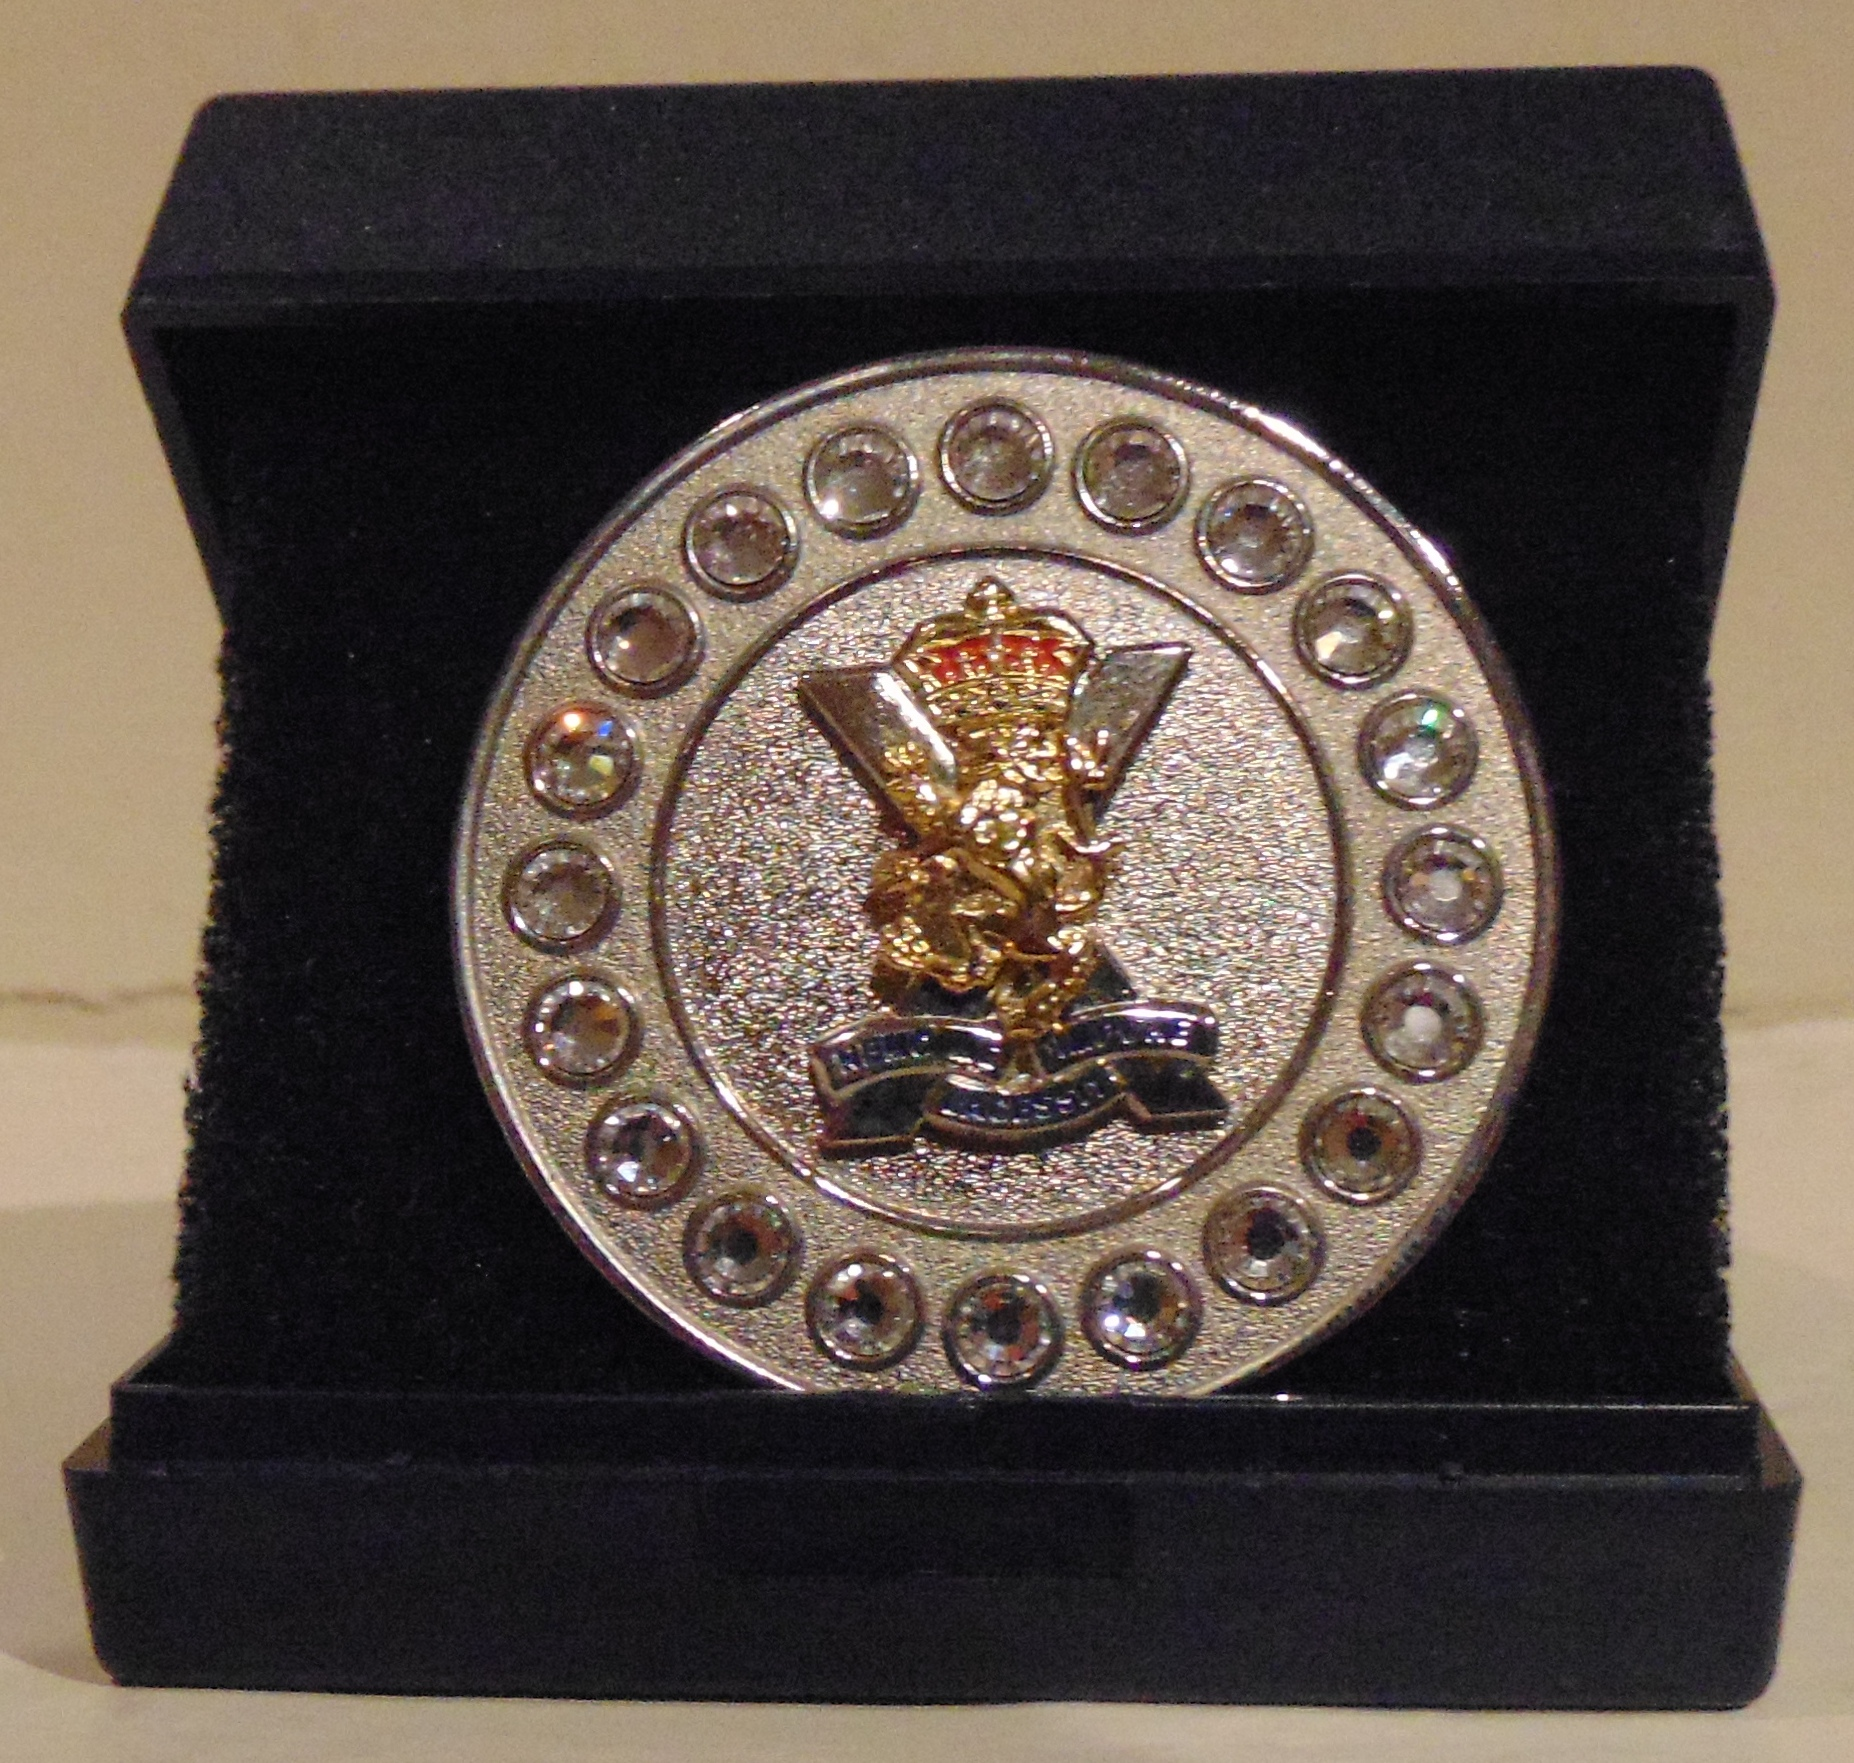 Royal Regiment of Scotland Brooch